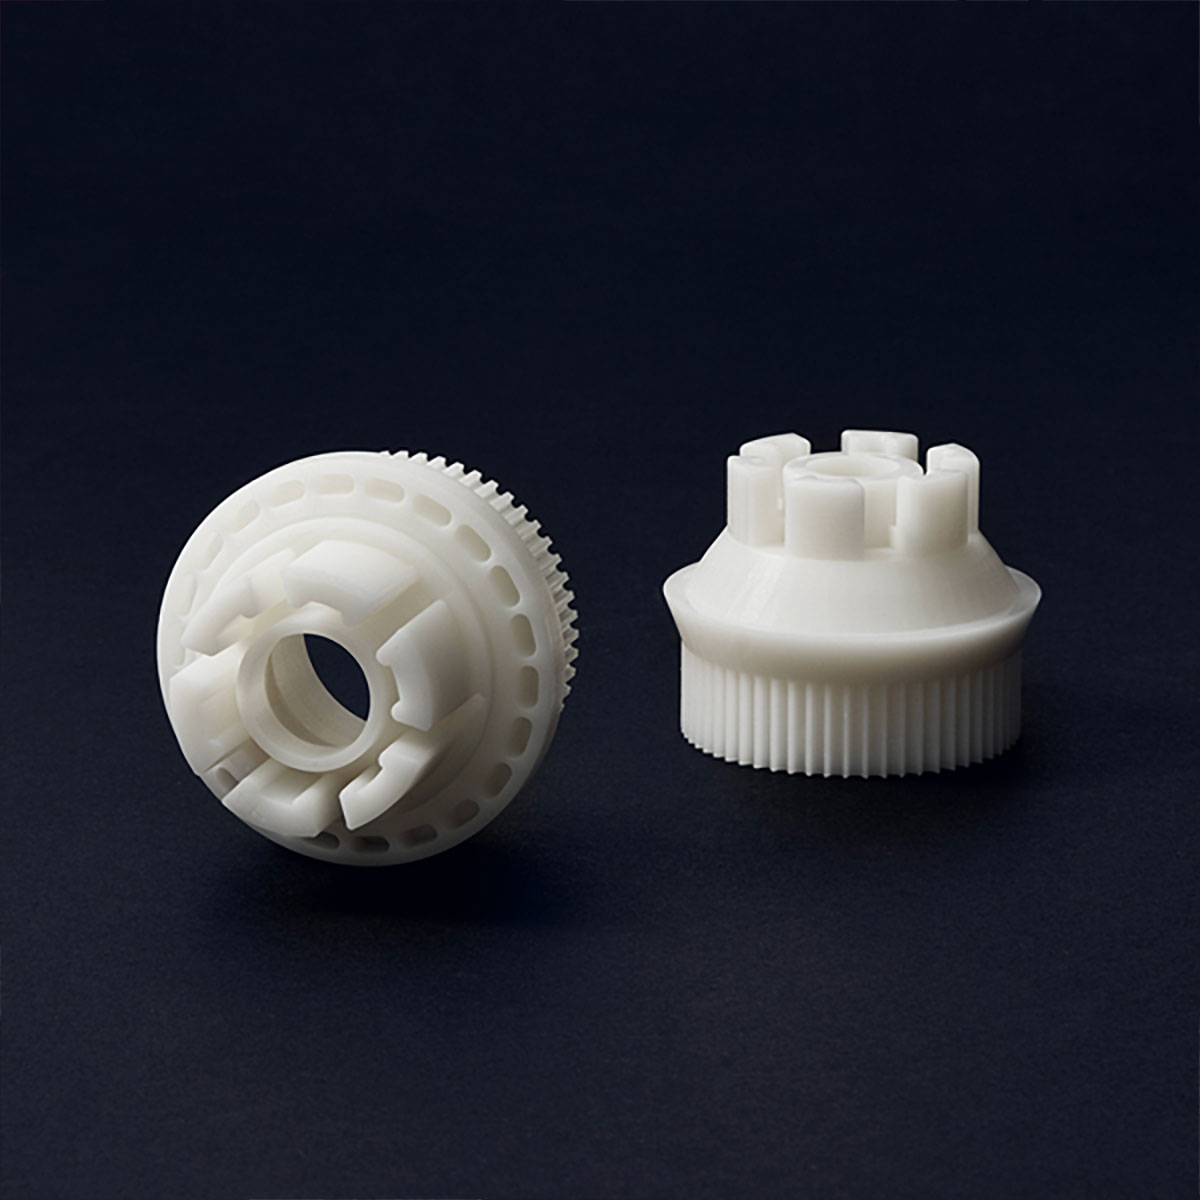 White plastic connector for icosahedron